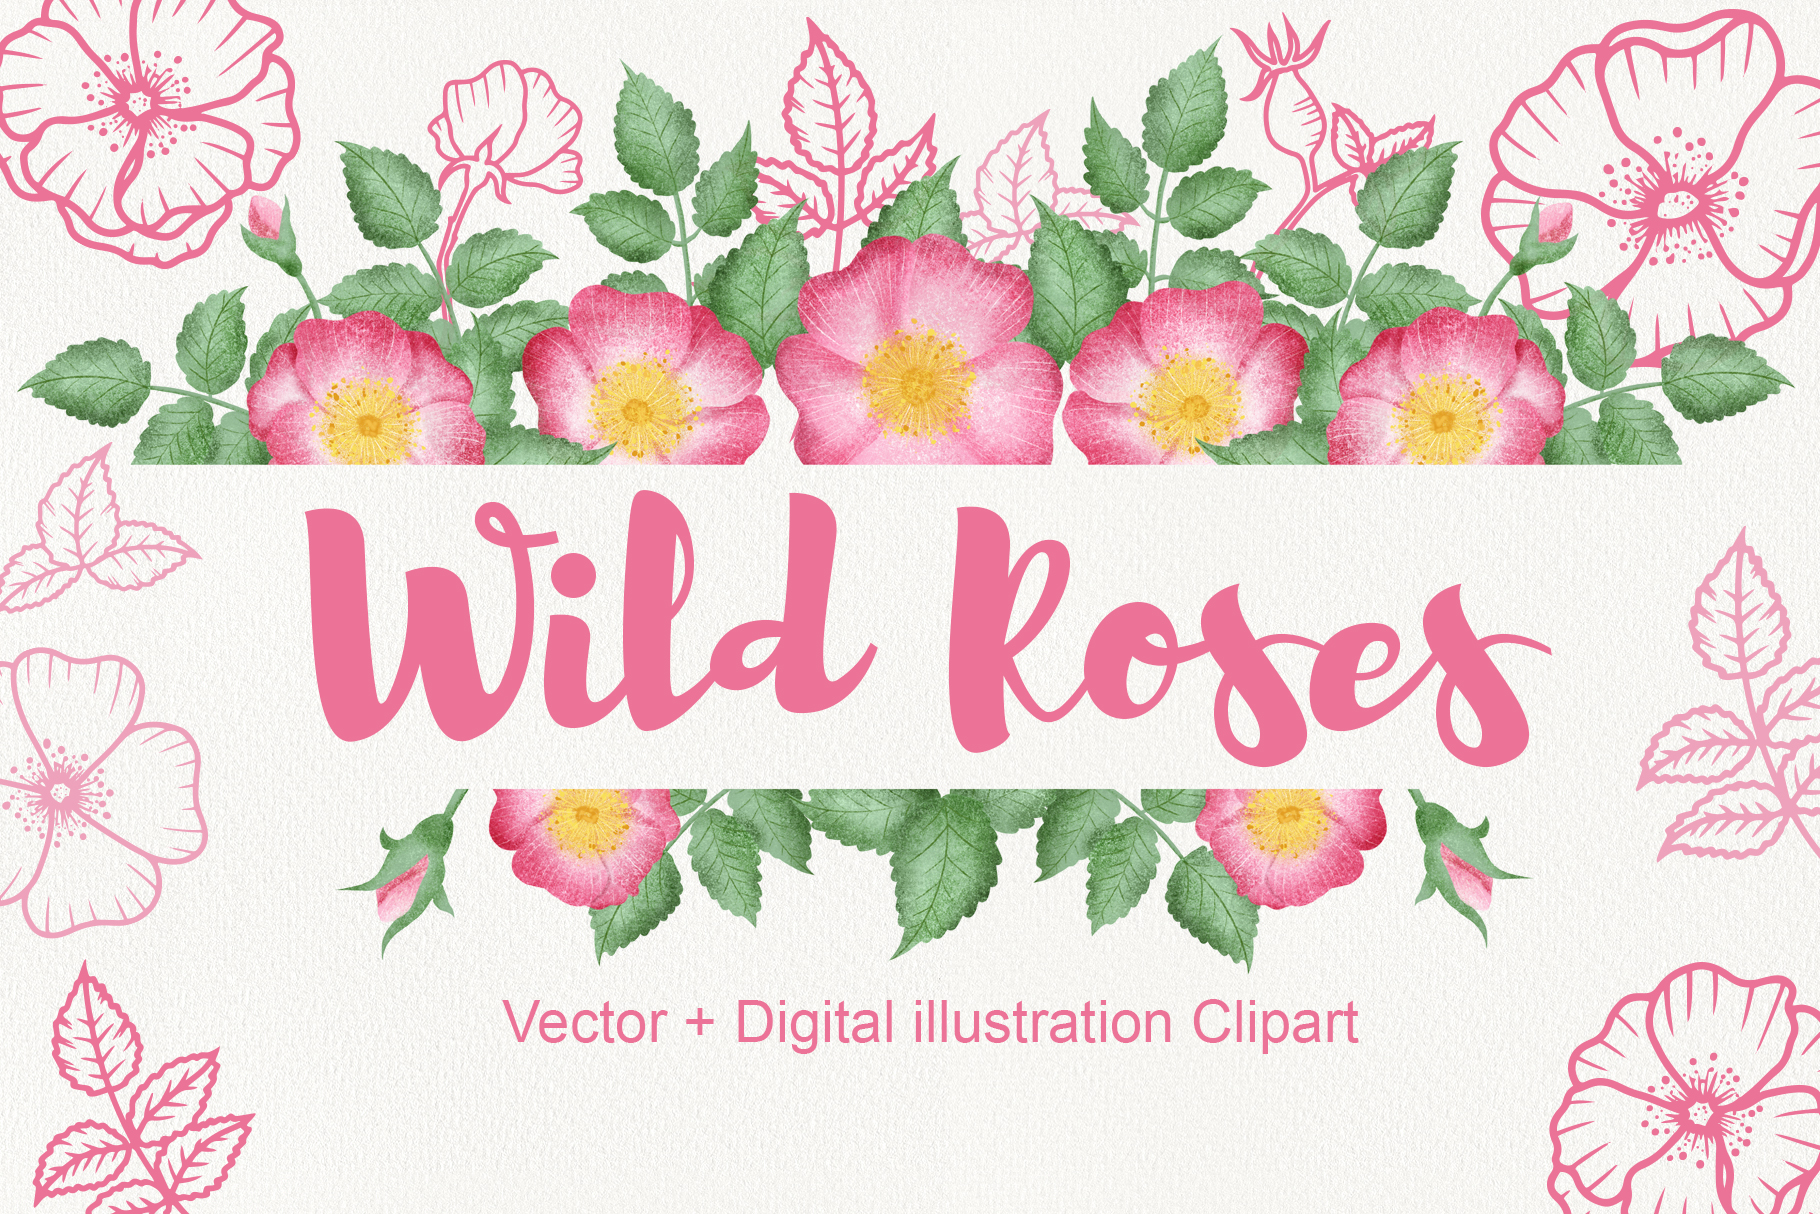 Wild Rose Clipart Rose Hip example image 1